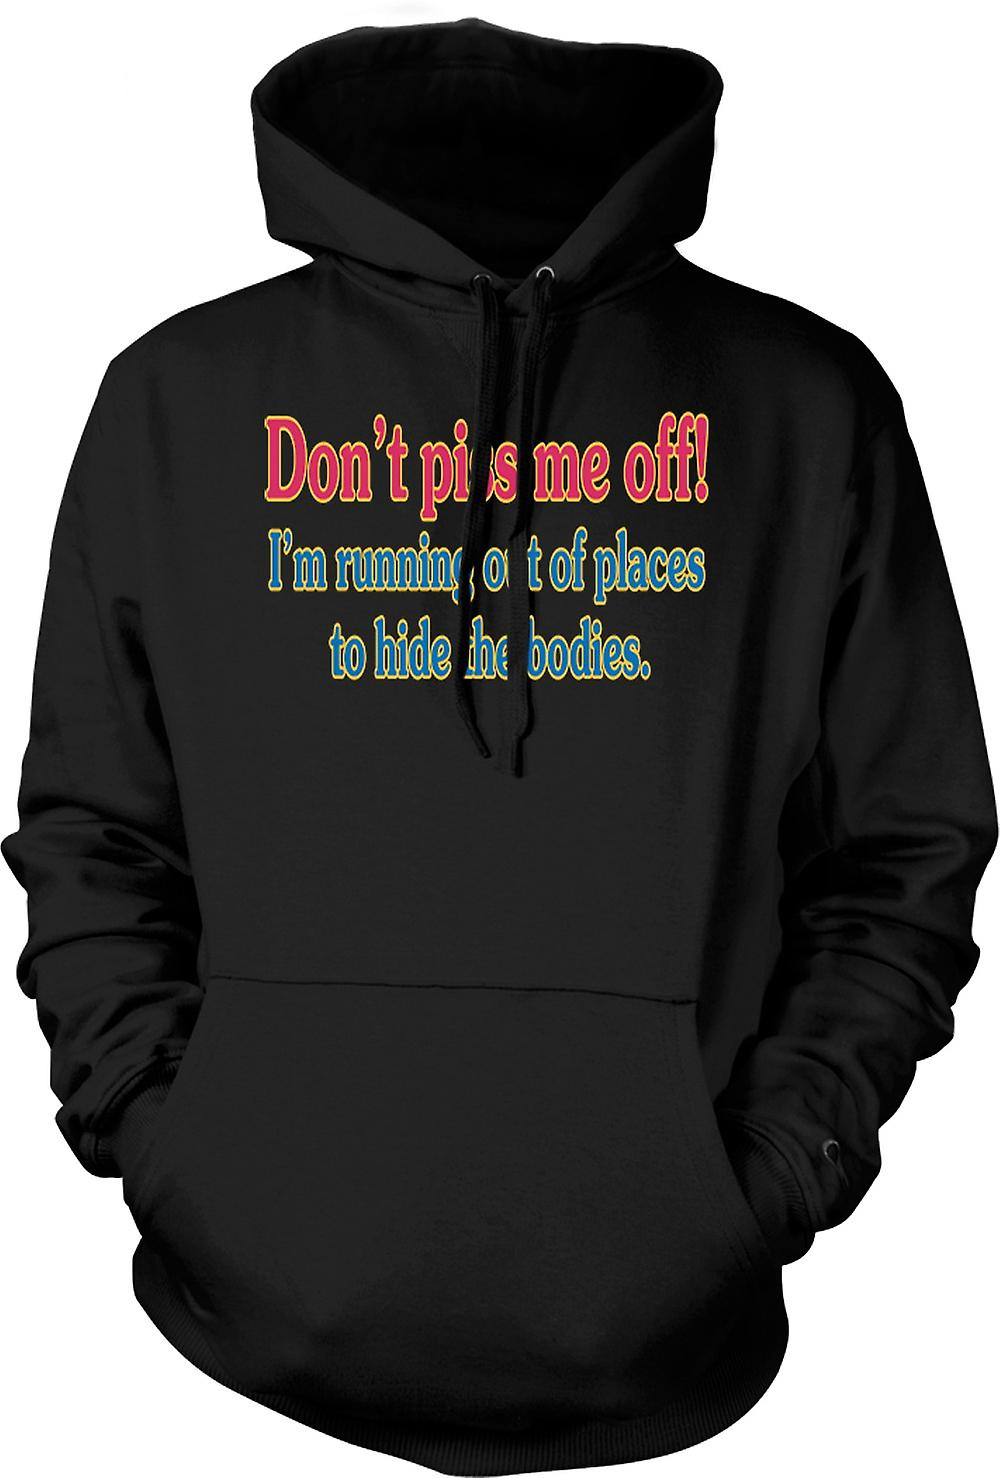 Mens Hoodie - Don't Piss Me Off! - Quote